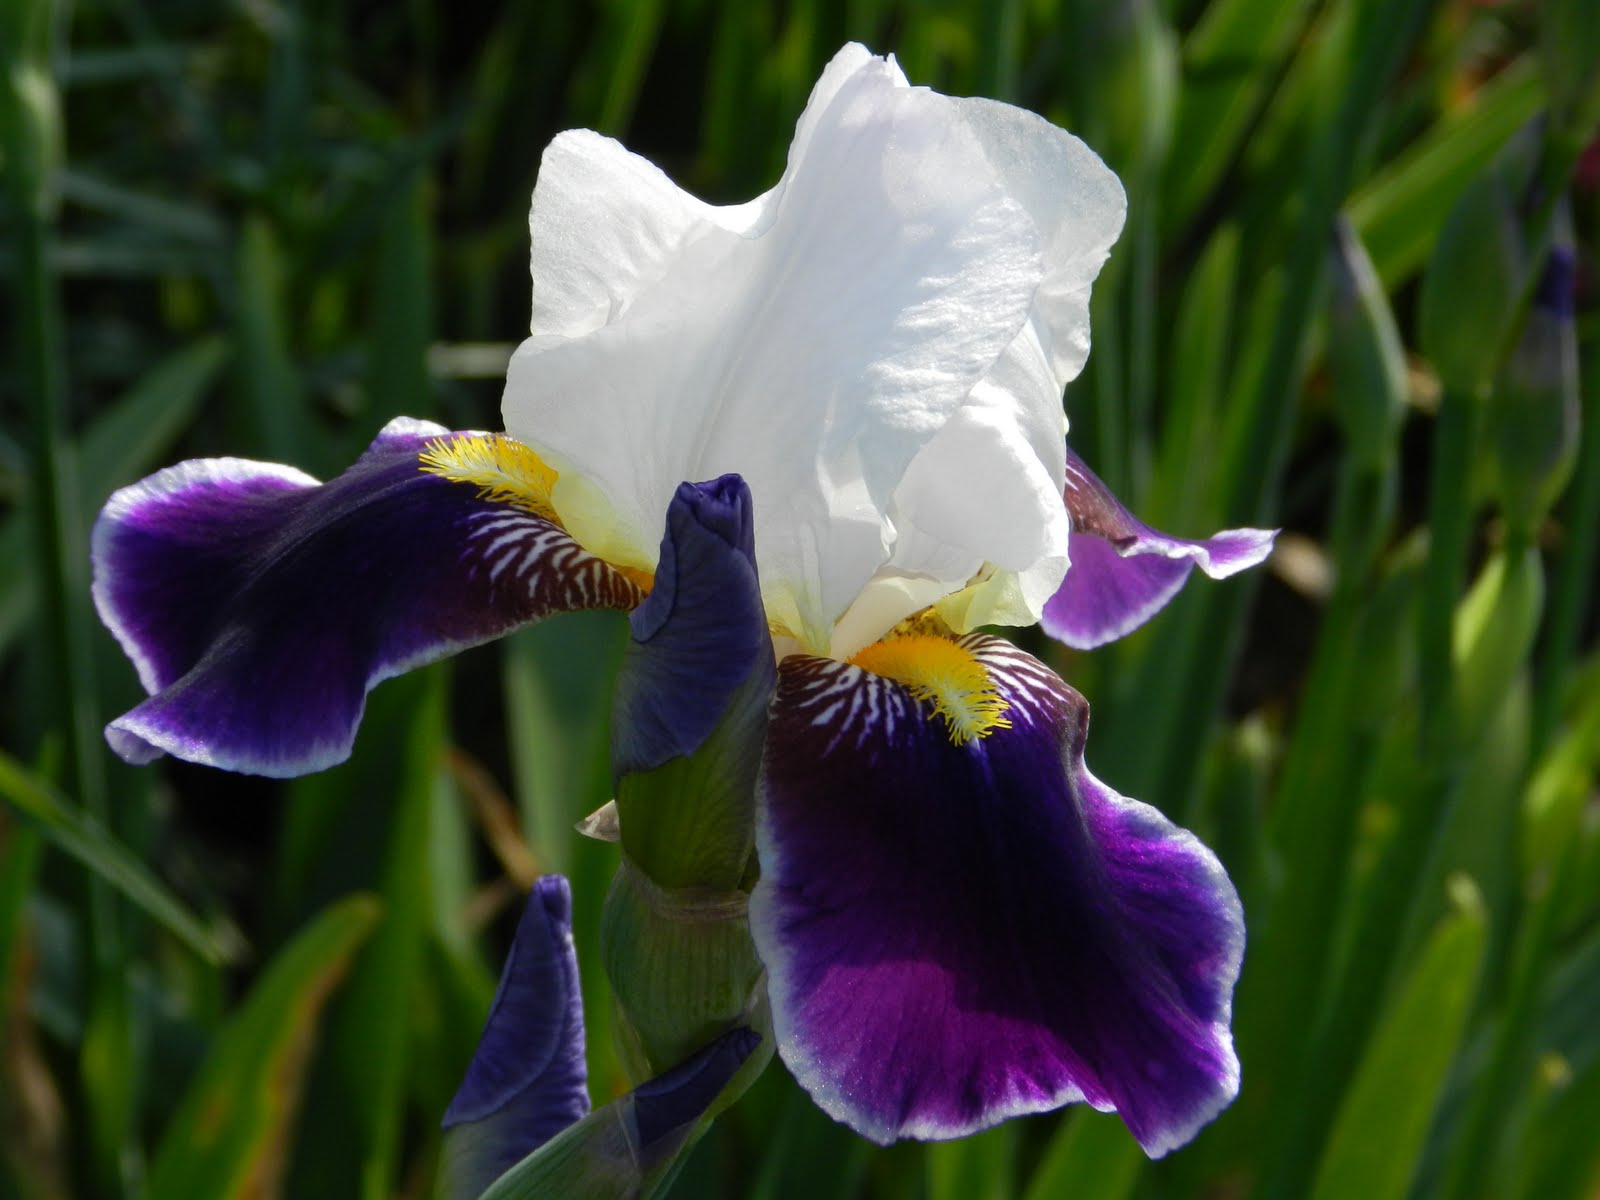 For the love of gardening iris mania wabash germanica was registered by m williamson in 1936 and is considered an antique it was purchased from select seeds and white flower farm mightylinksfo